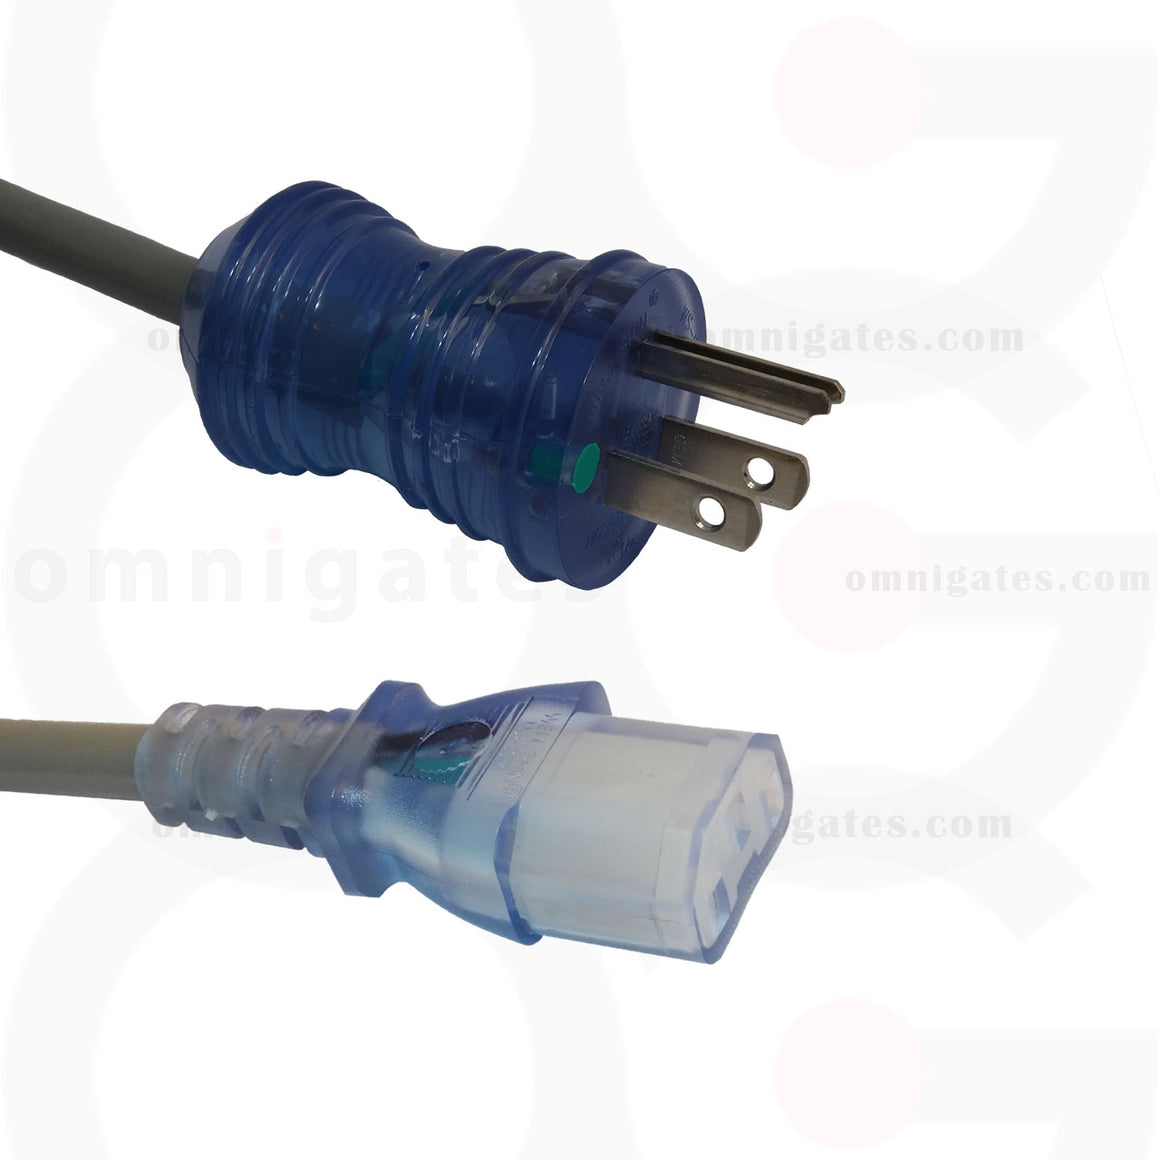 Hospital Grade Cable 18AWG NEMA 5-15P to C13 male